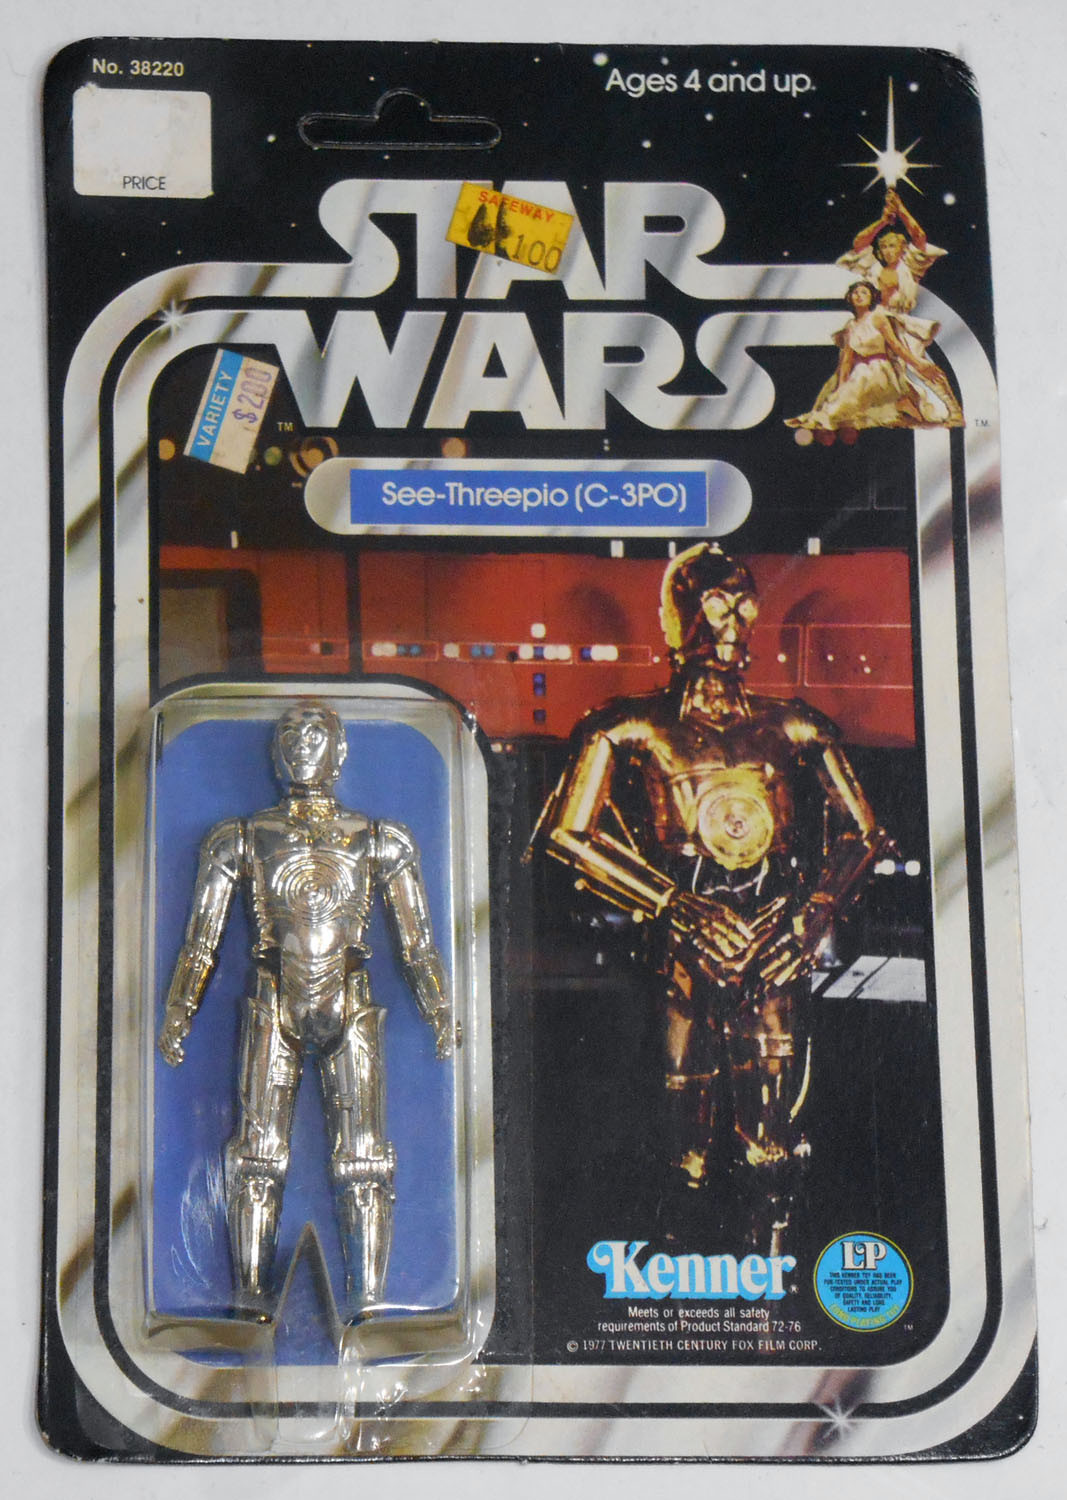 Kenner Star Wars Toys : Kenner s star wars action figures artoo detoo and see